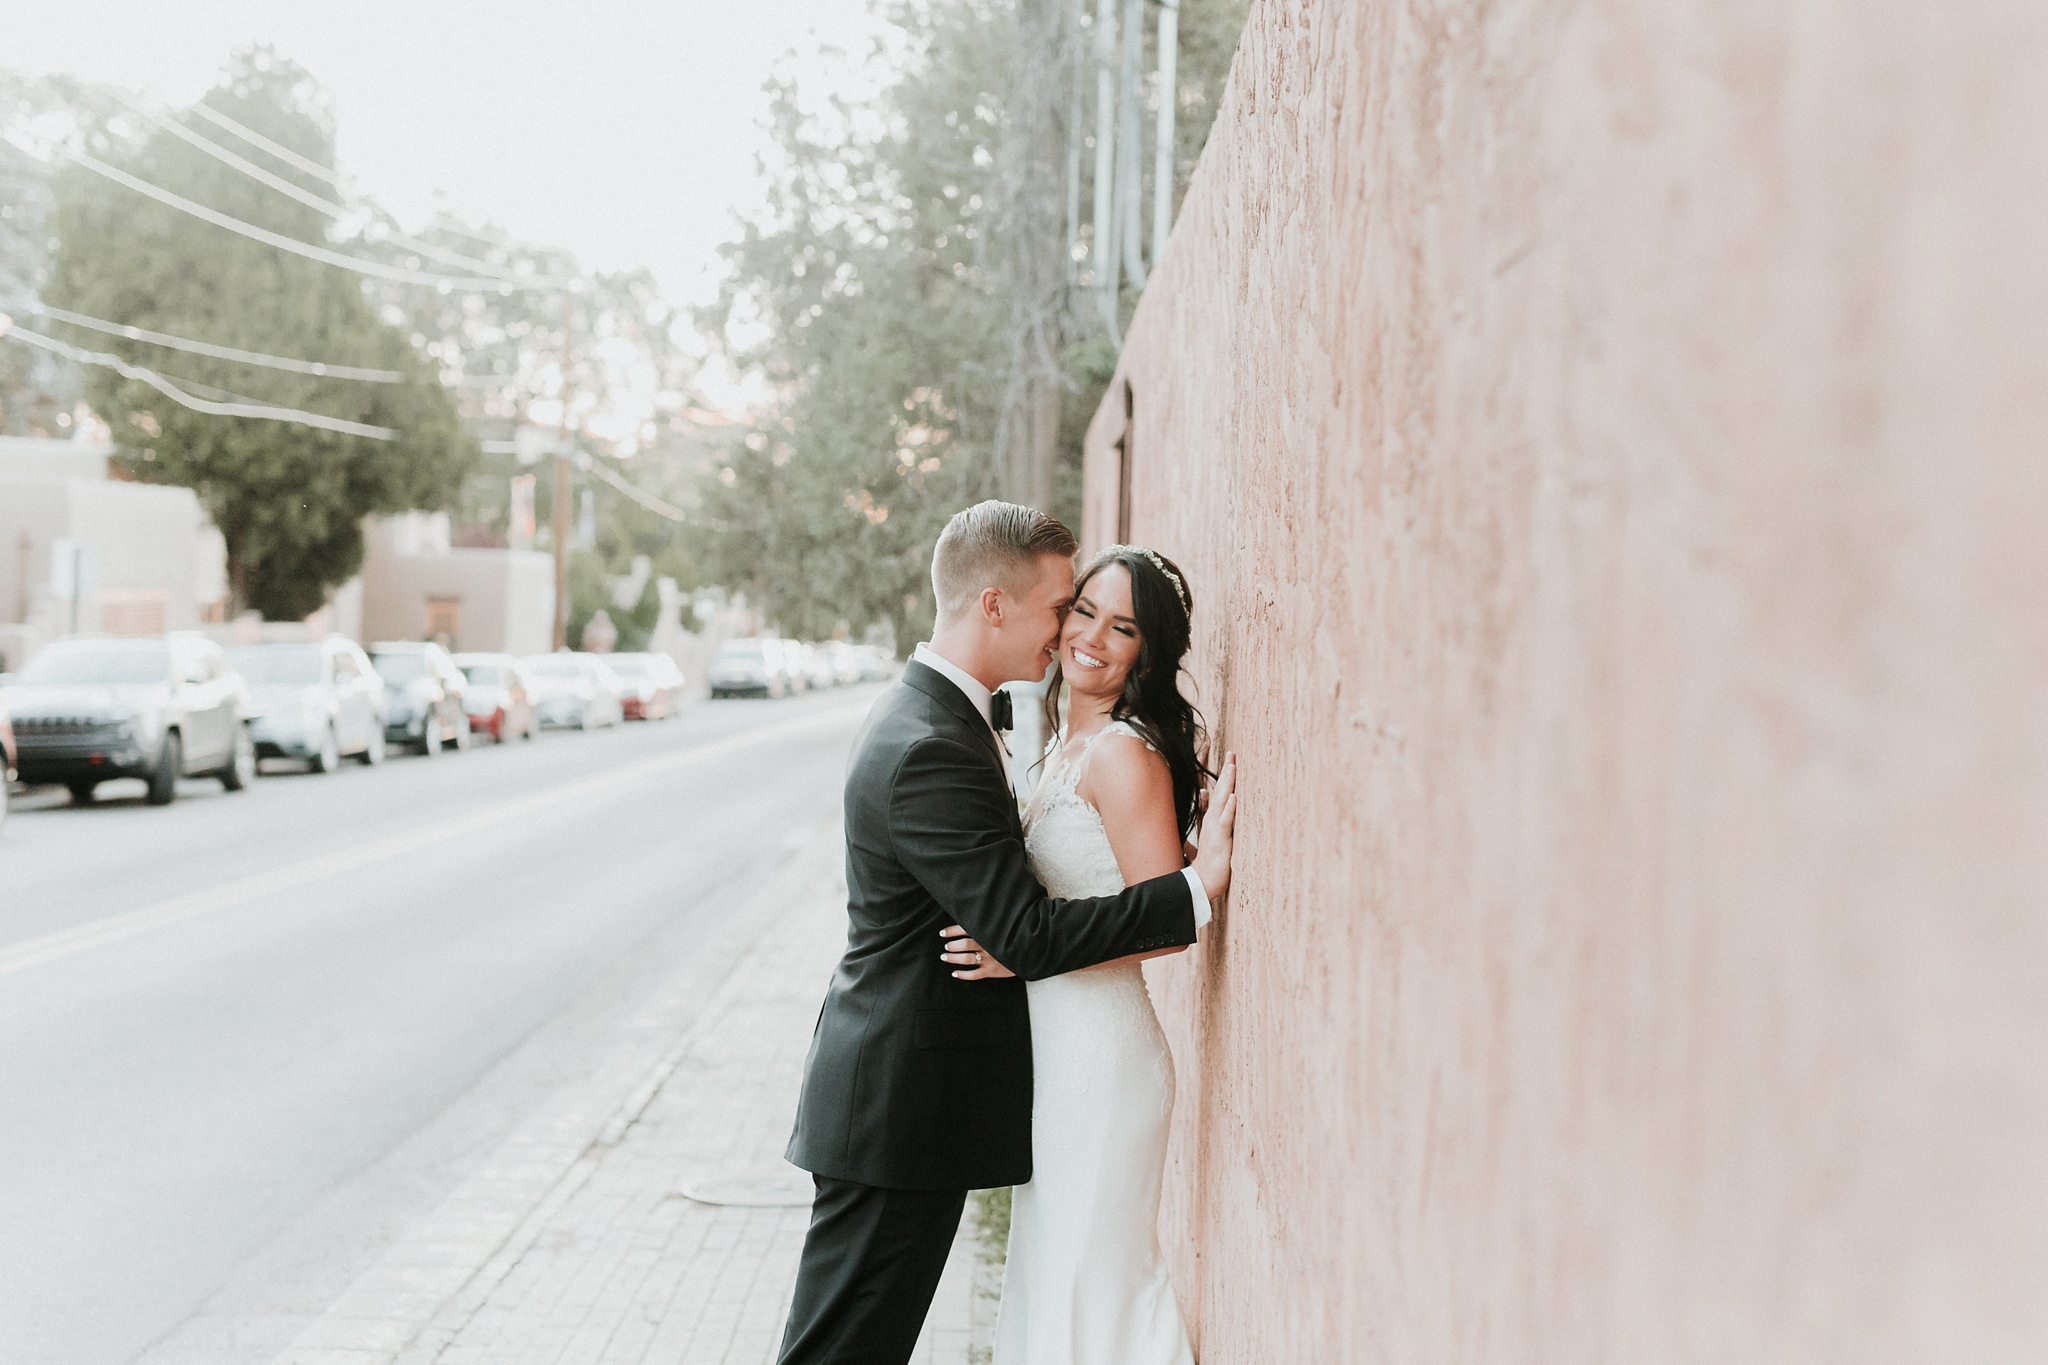 Alicia+lucia+photography+-+albuquerque+wedding+photographer+-+santa+fe+wedding+photography+-+new+mexico+wedding+photographer+-+new+mexico+wedding+-+wedding+makeup+-+makeup+artist+-+wedding+makeup+artist+-+bridal+makeup_0047.jpg